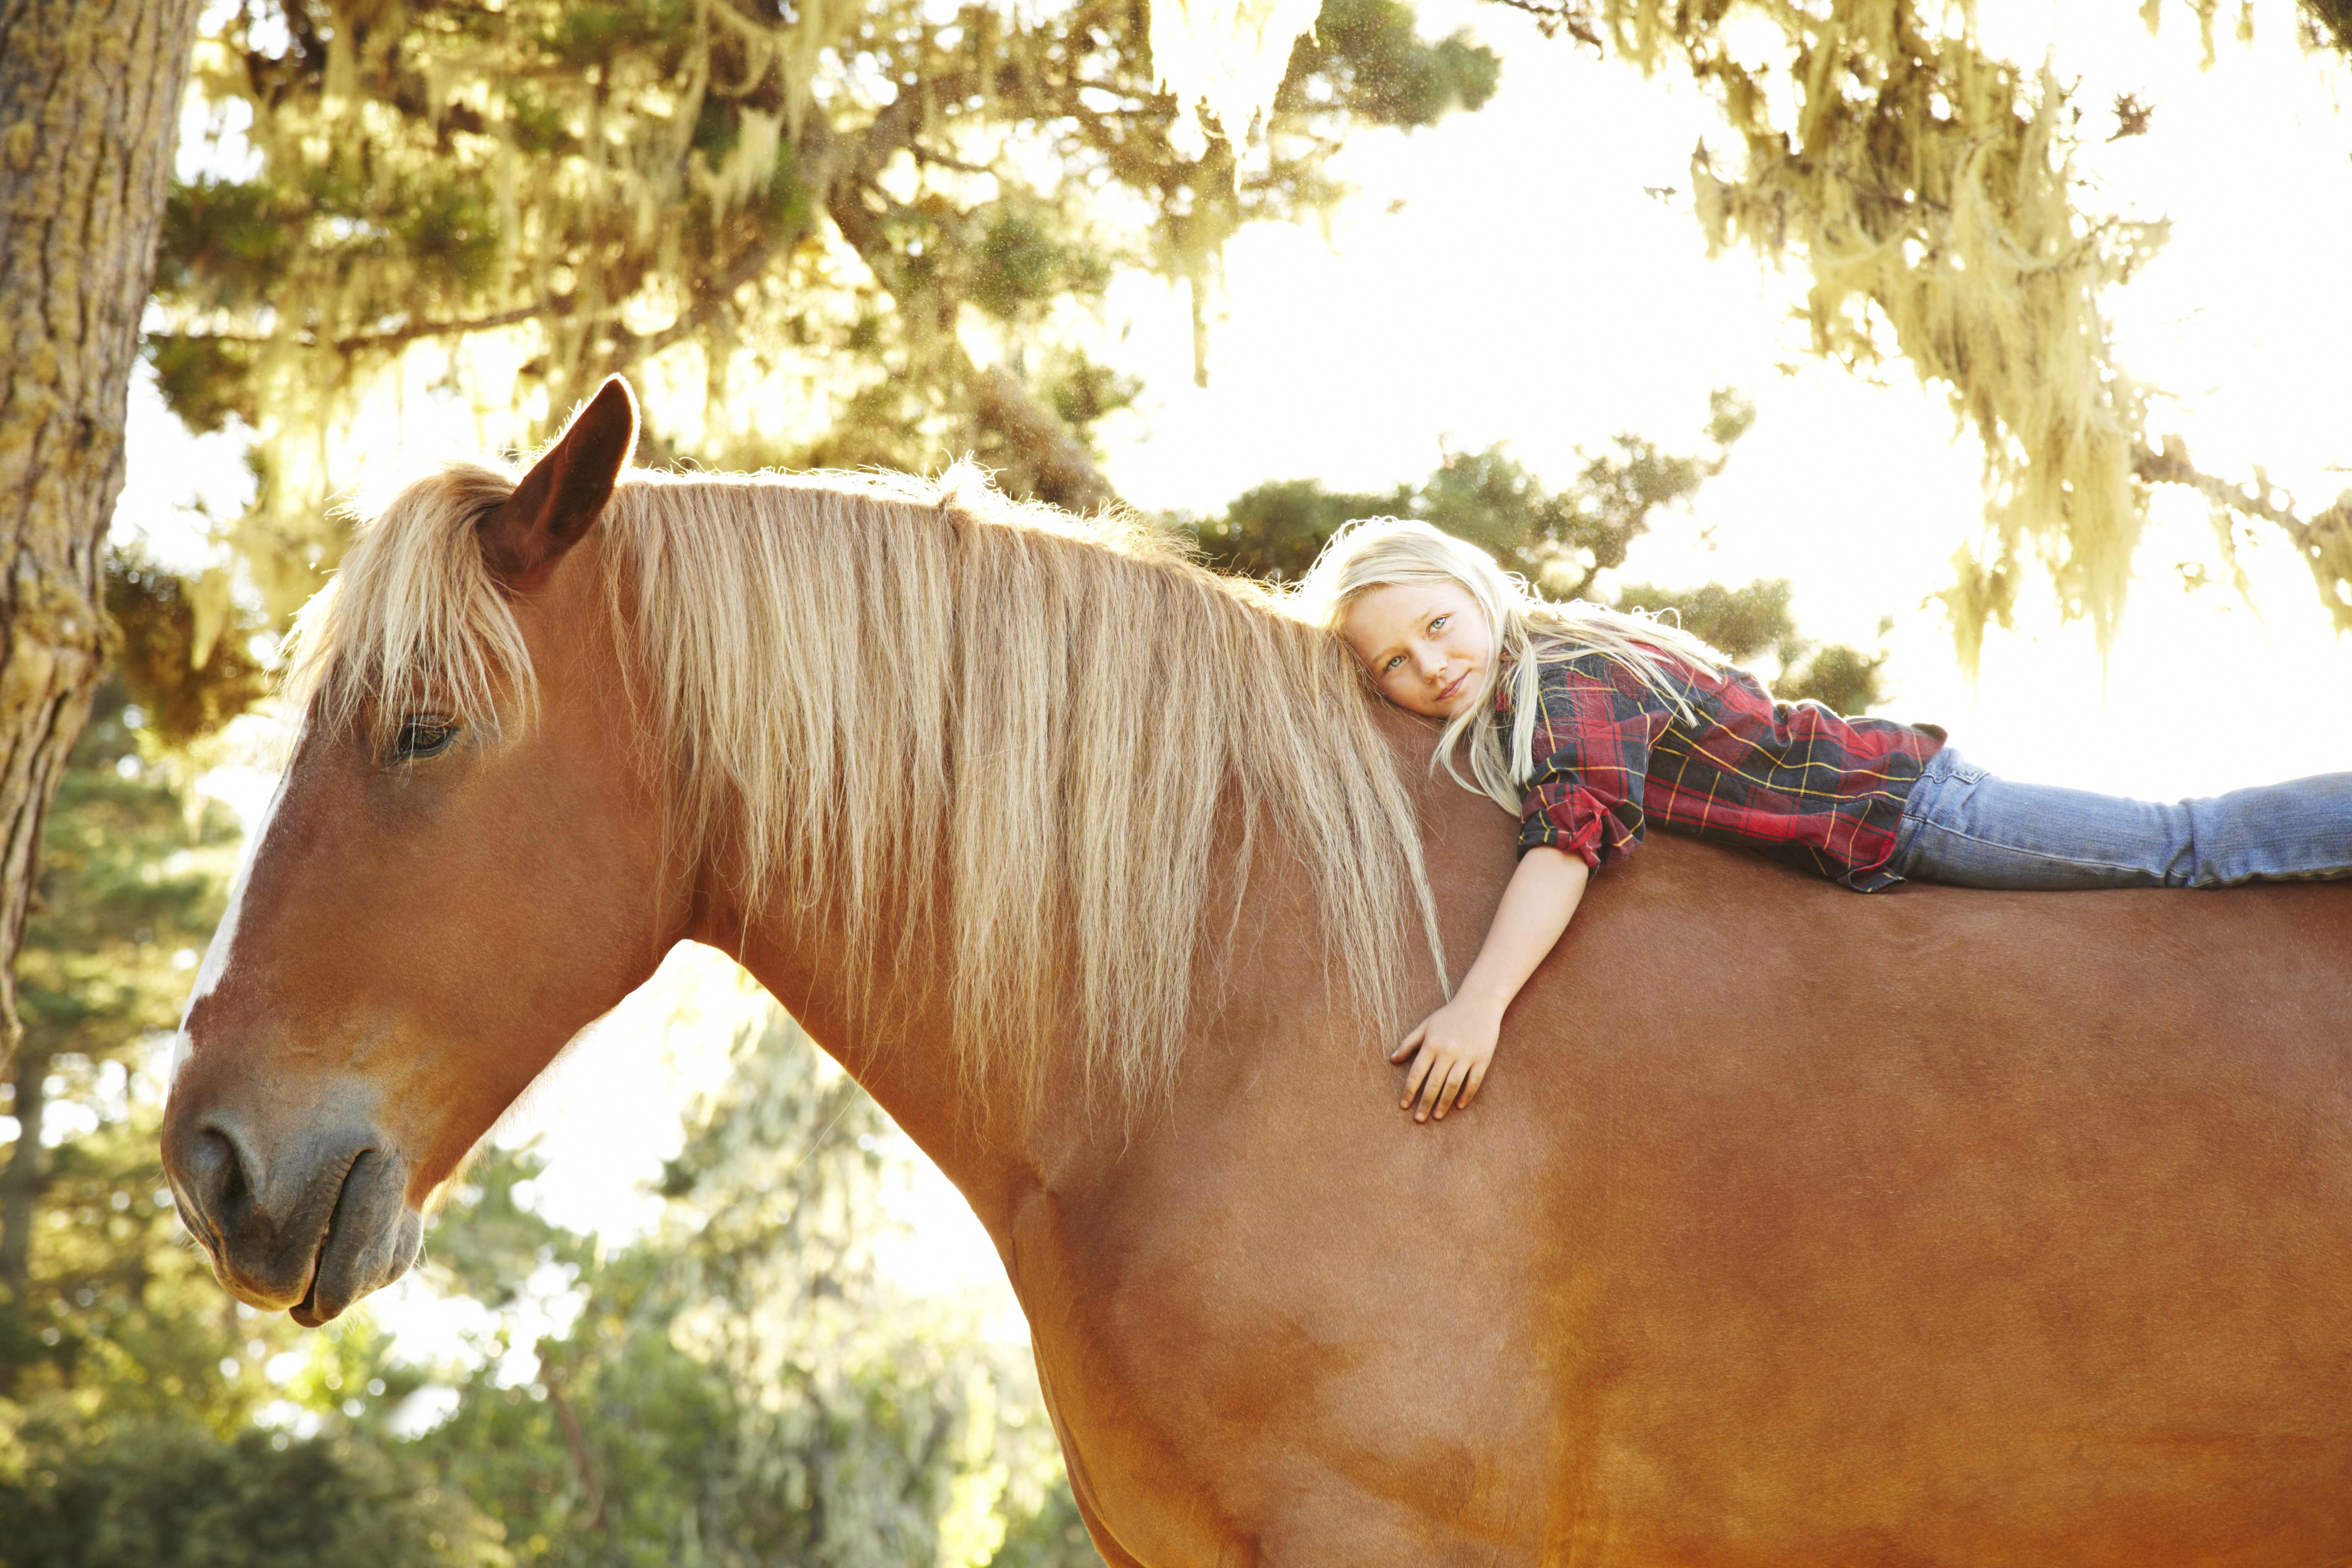 Draft Horse & Girl Photo - Small